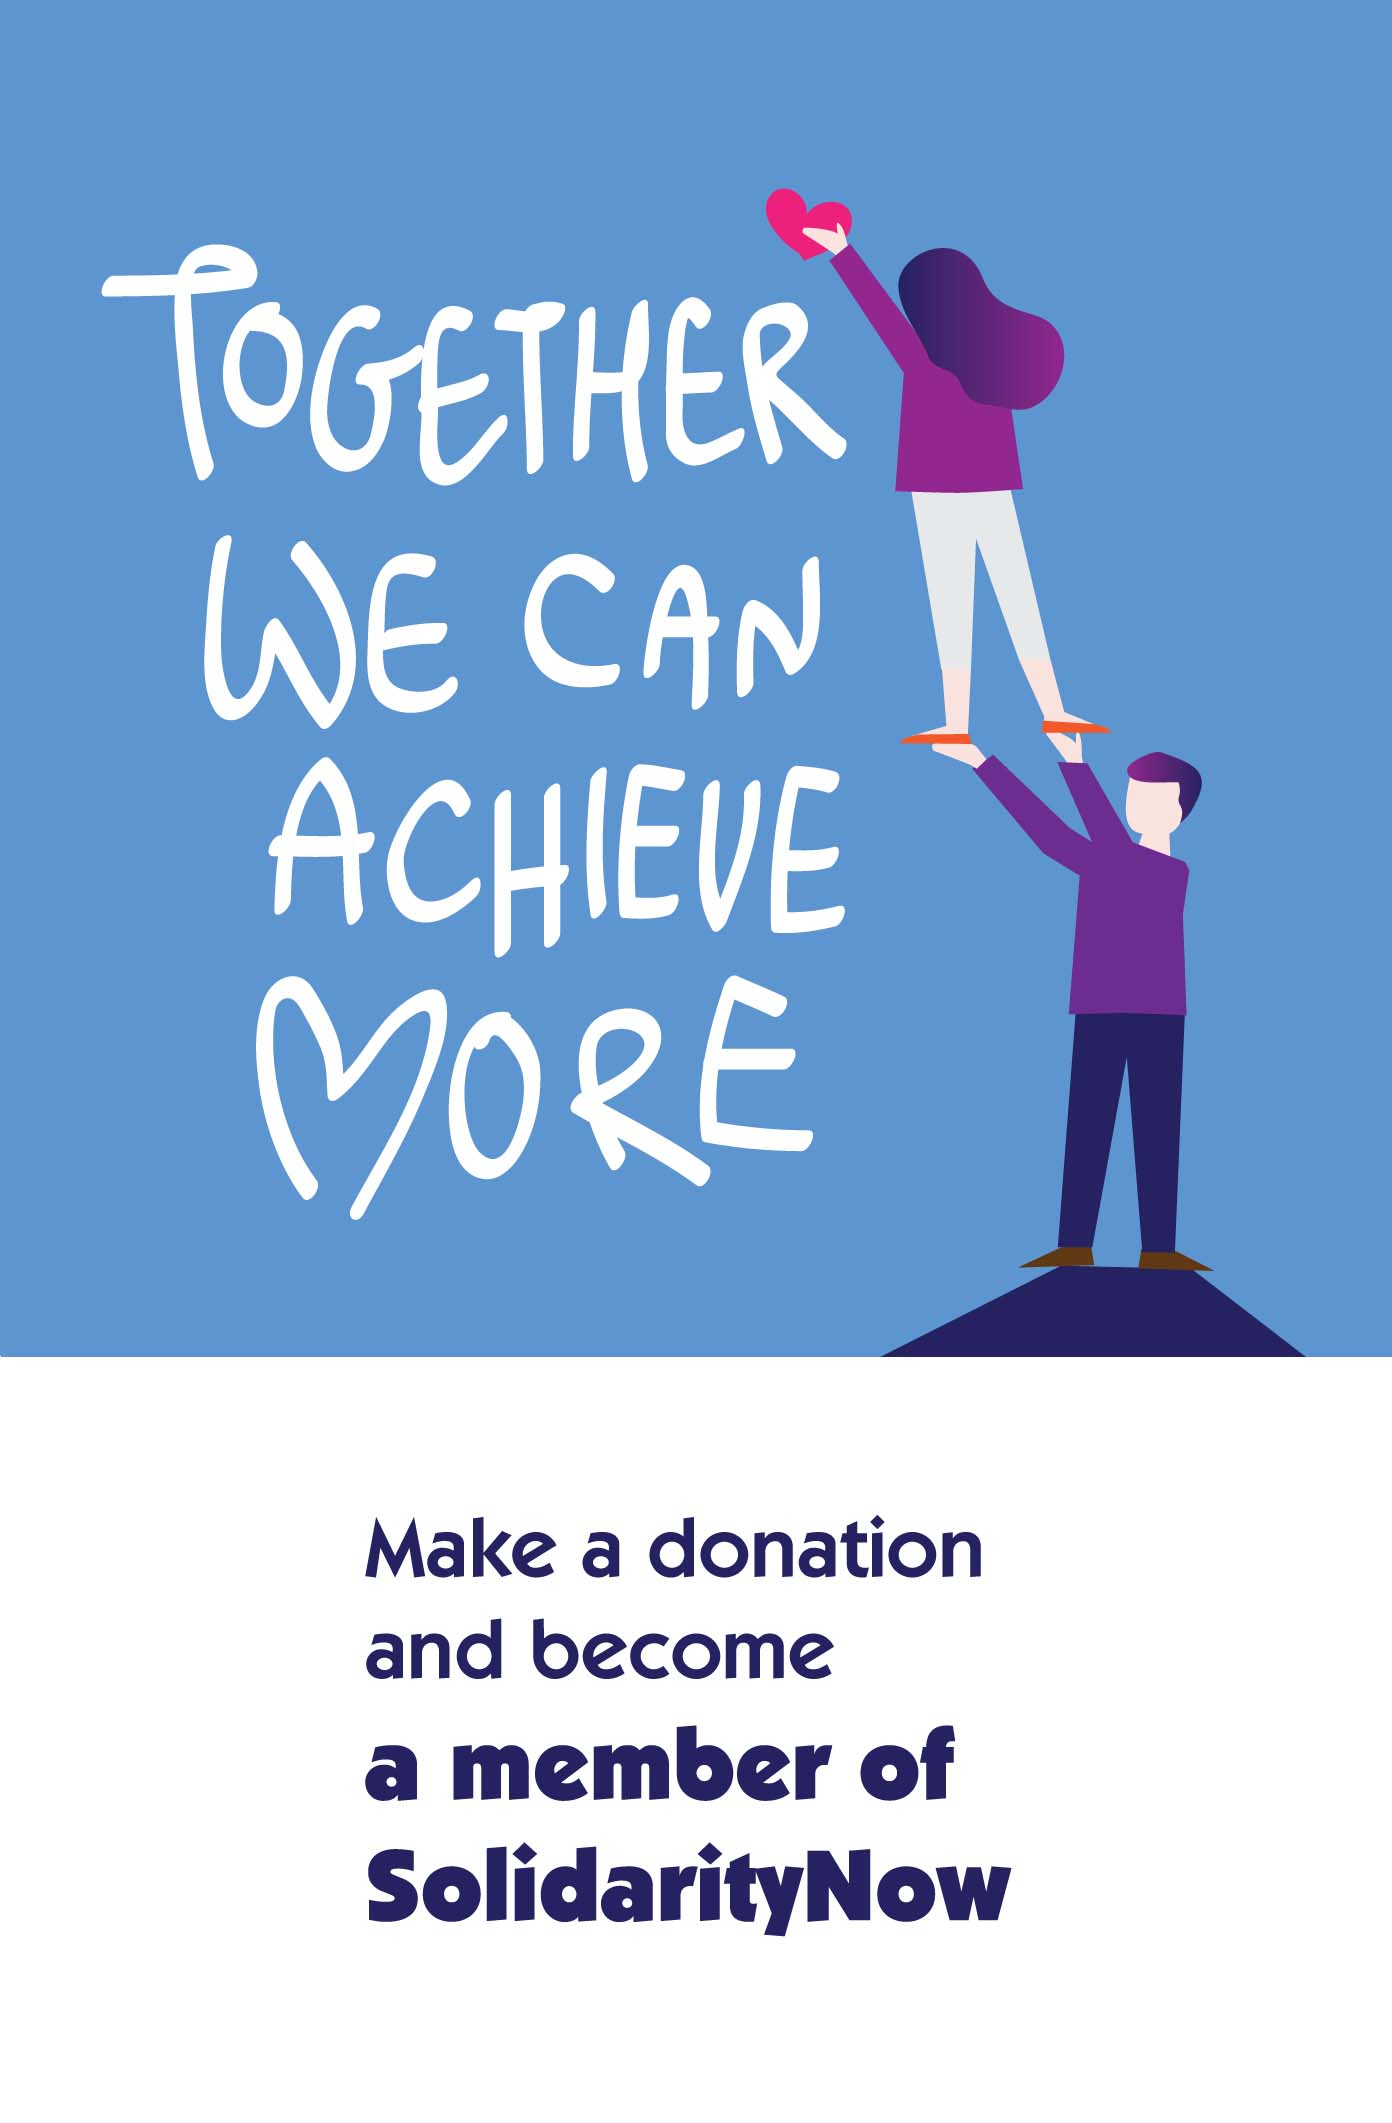 Make a donation and become a member of SolidarityNow